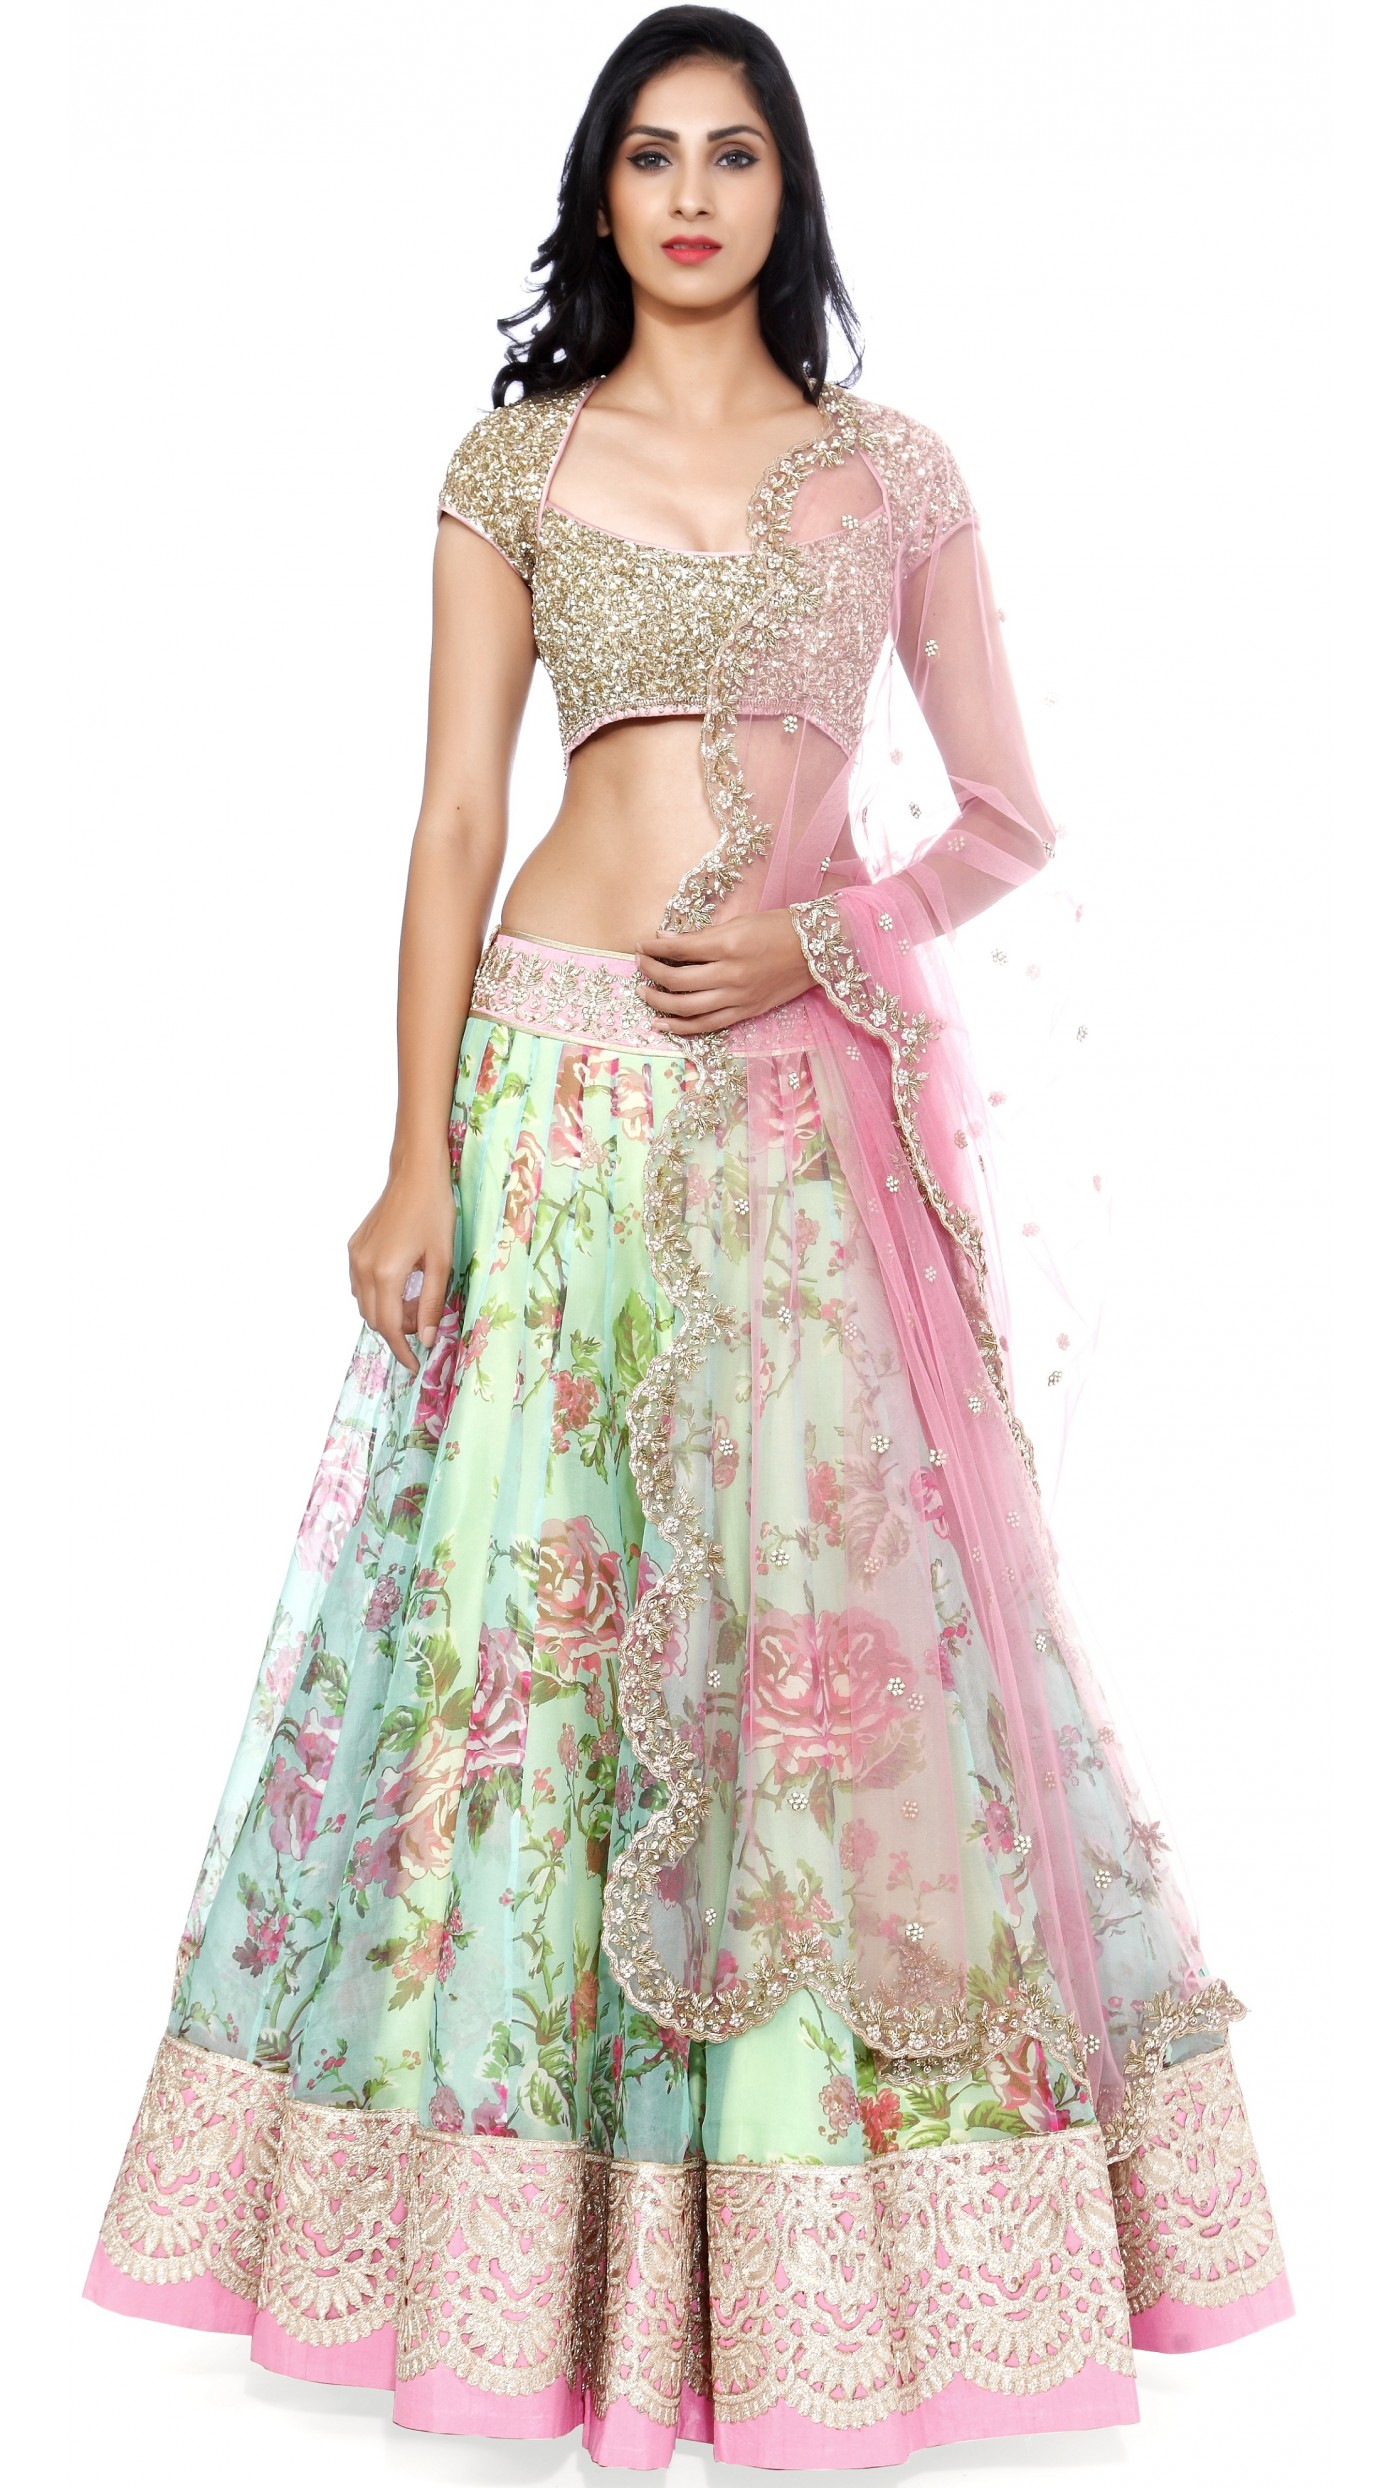 India Online Internet Use In India And The Development Of: Anushree Reddy's Blue Green Floral Lengha Set